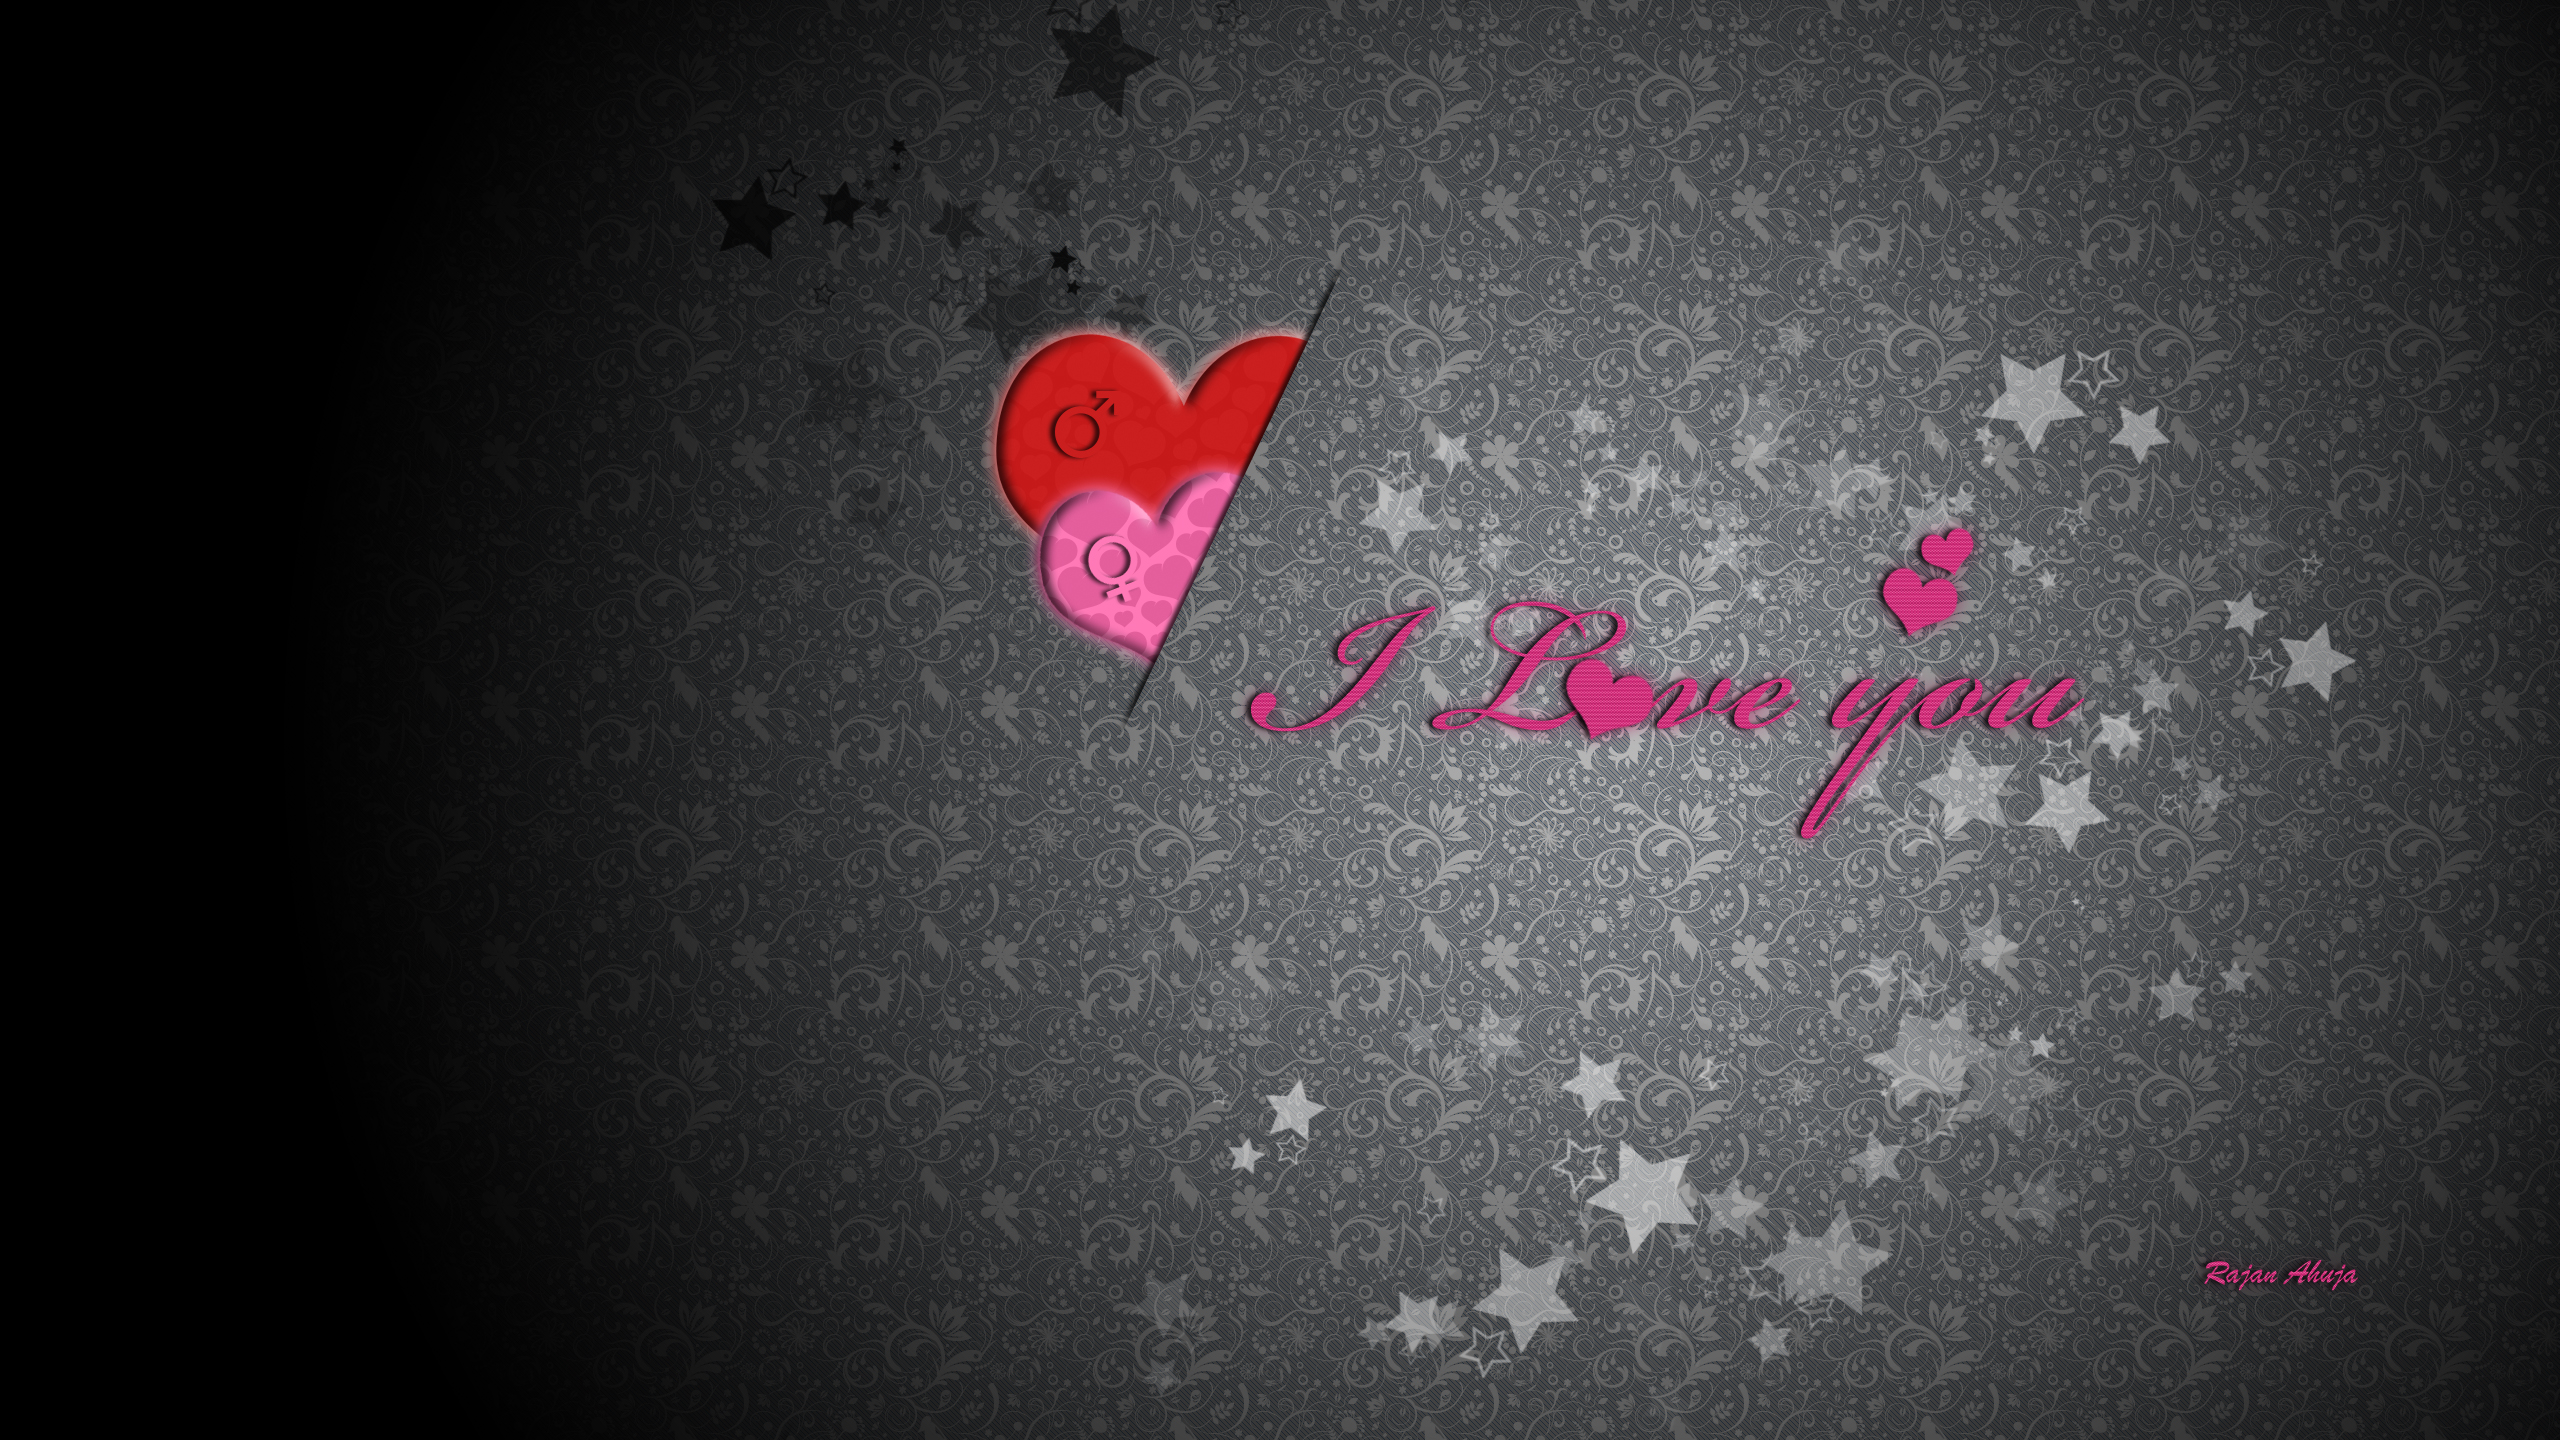 Desktop Wallpaper I Love You : 2560x1440 I love you desktop Pc and Mac wallpaper